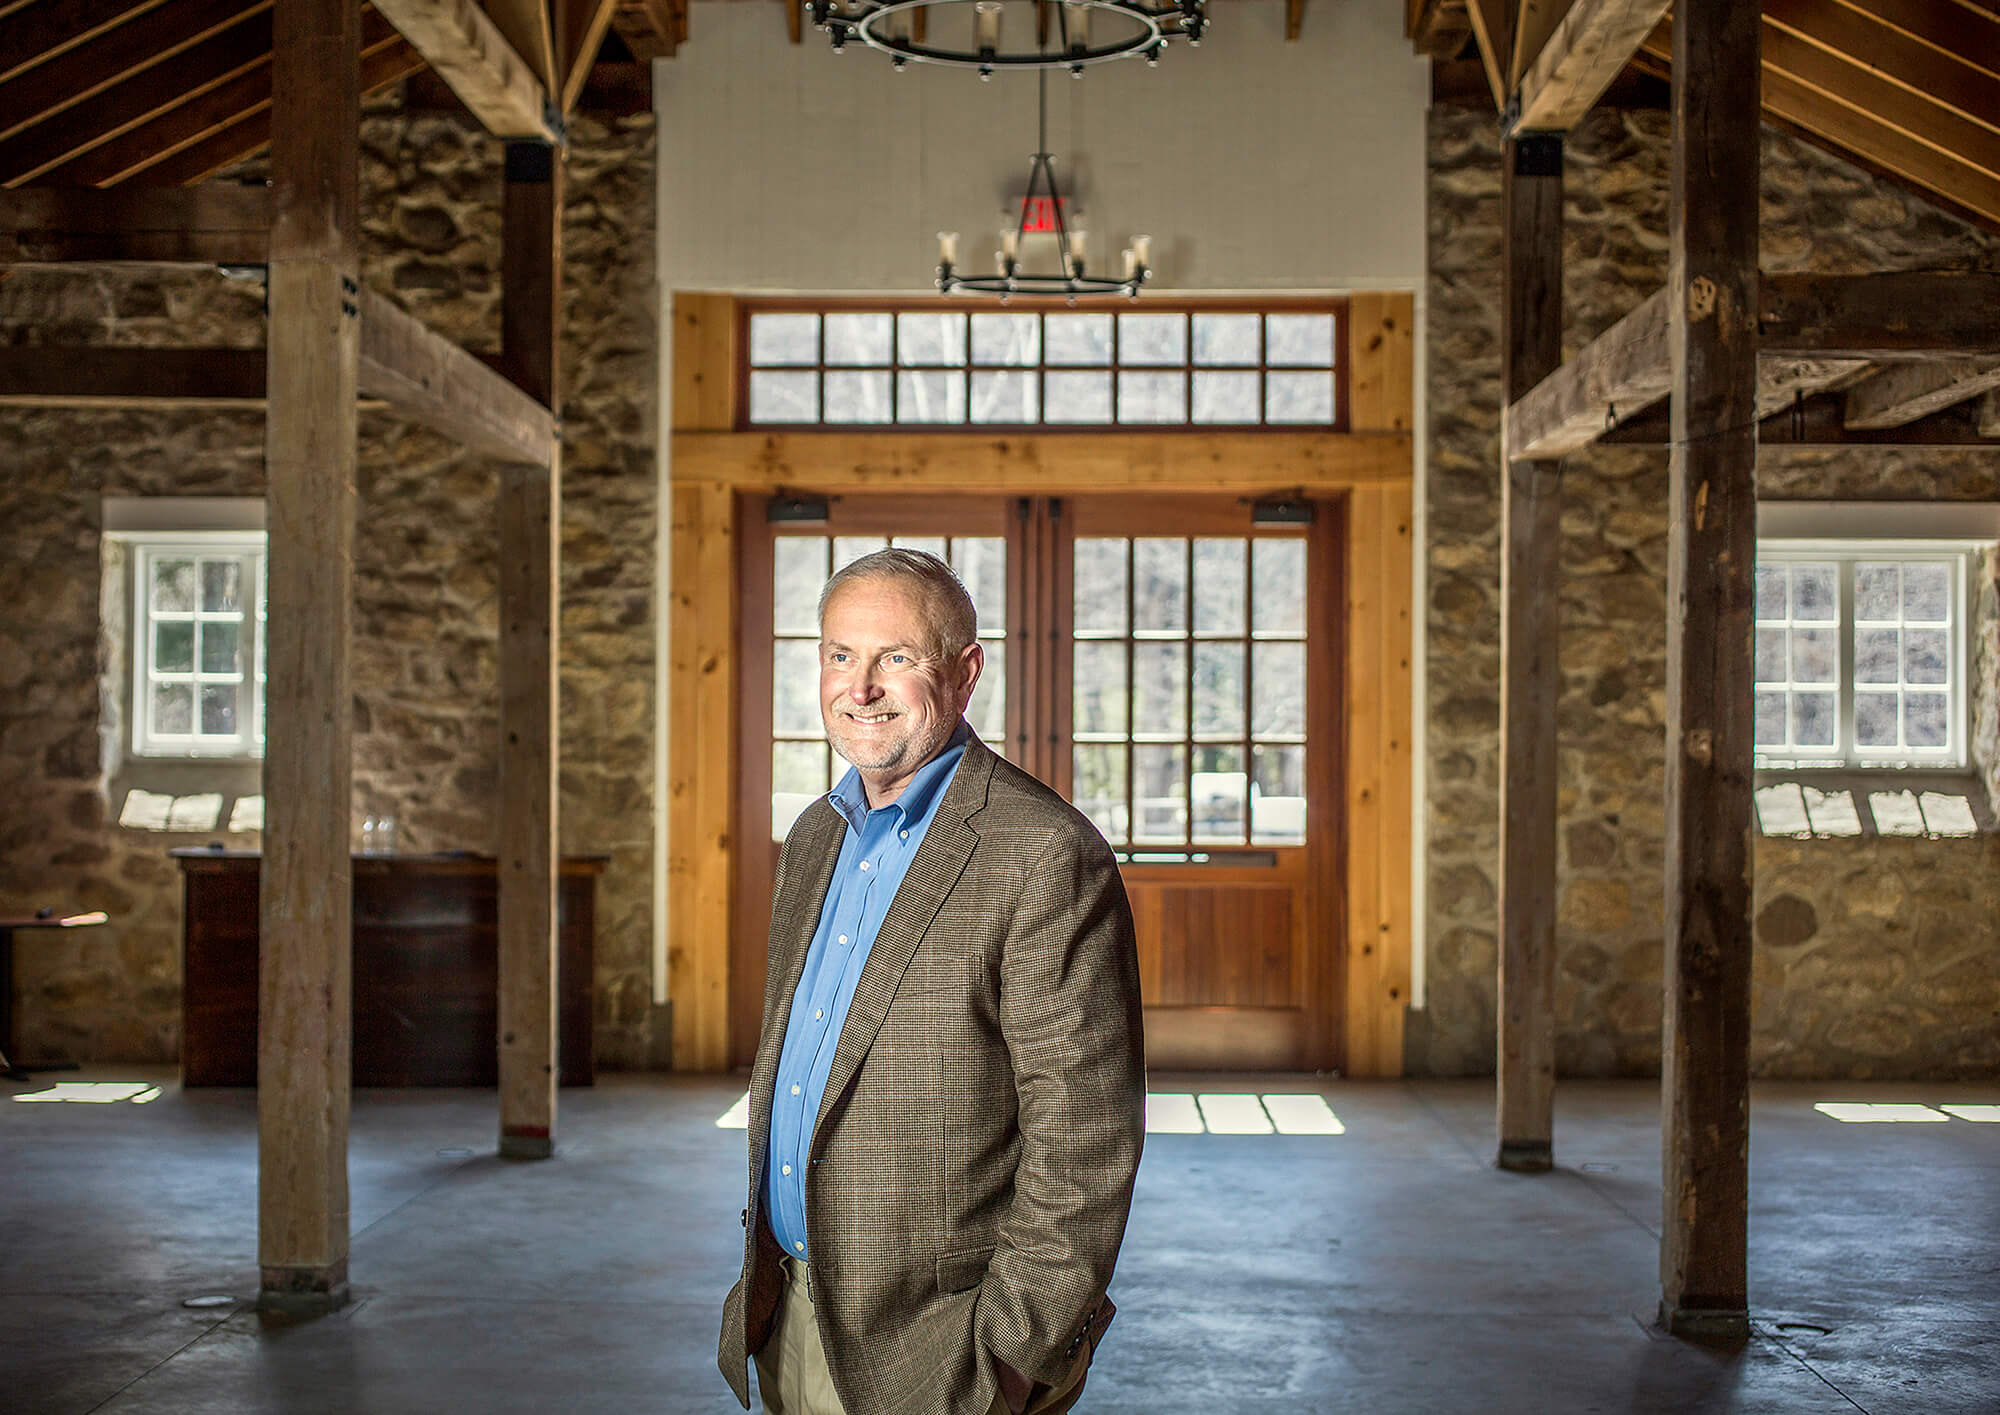 Portrait photography of Saint Joseph's College President Dr. James Dlugos in The Stone Barn at Sebago Lake on the Saint Joseph's College campus in Standish